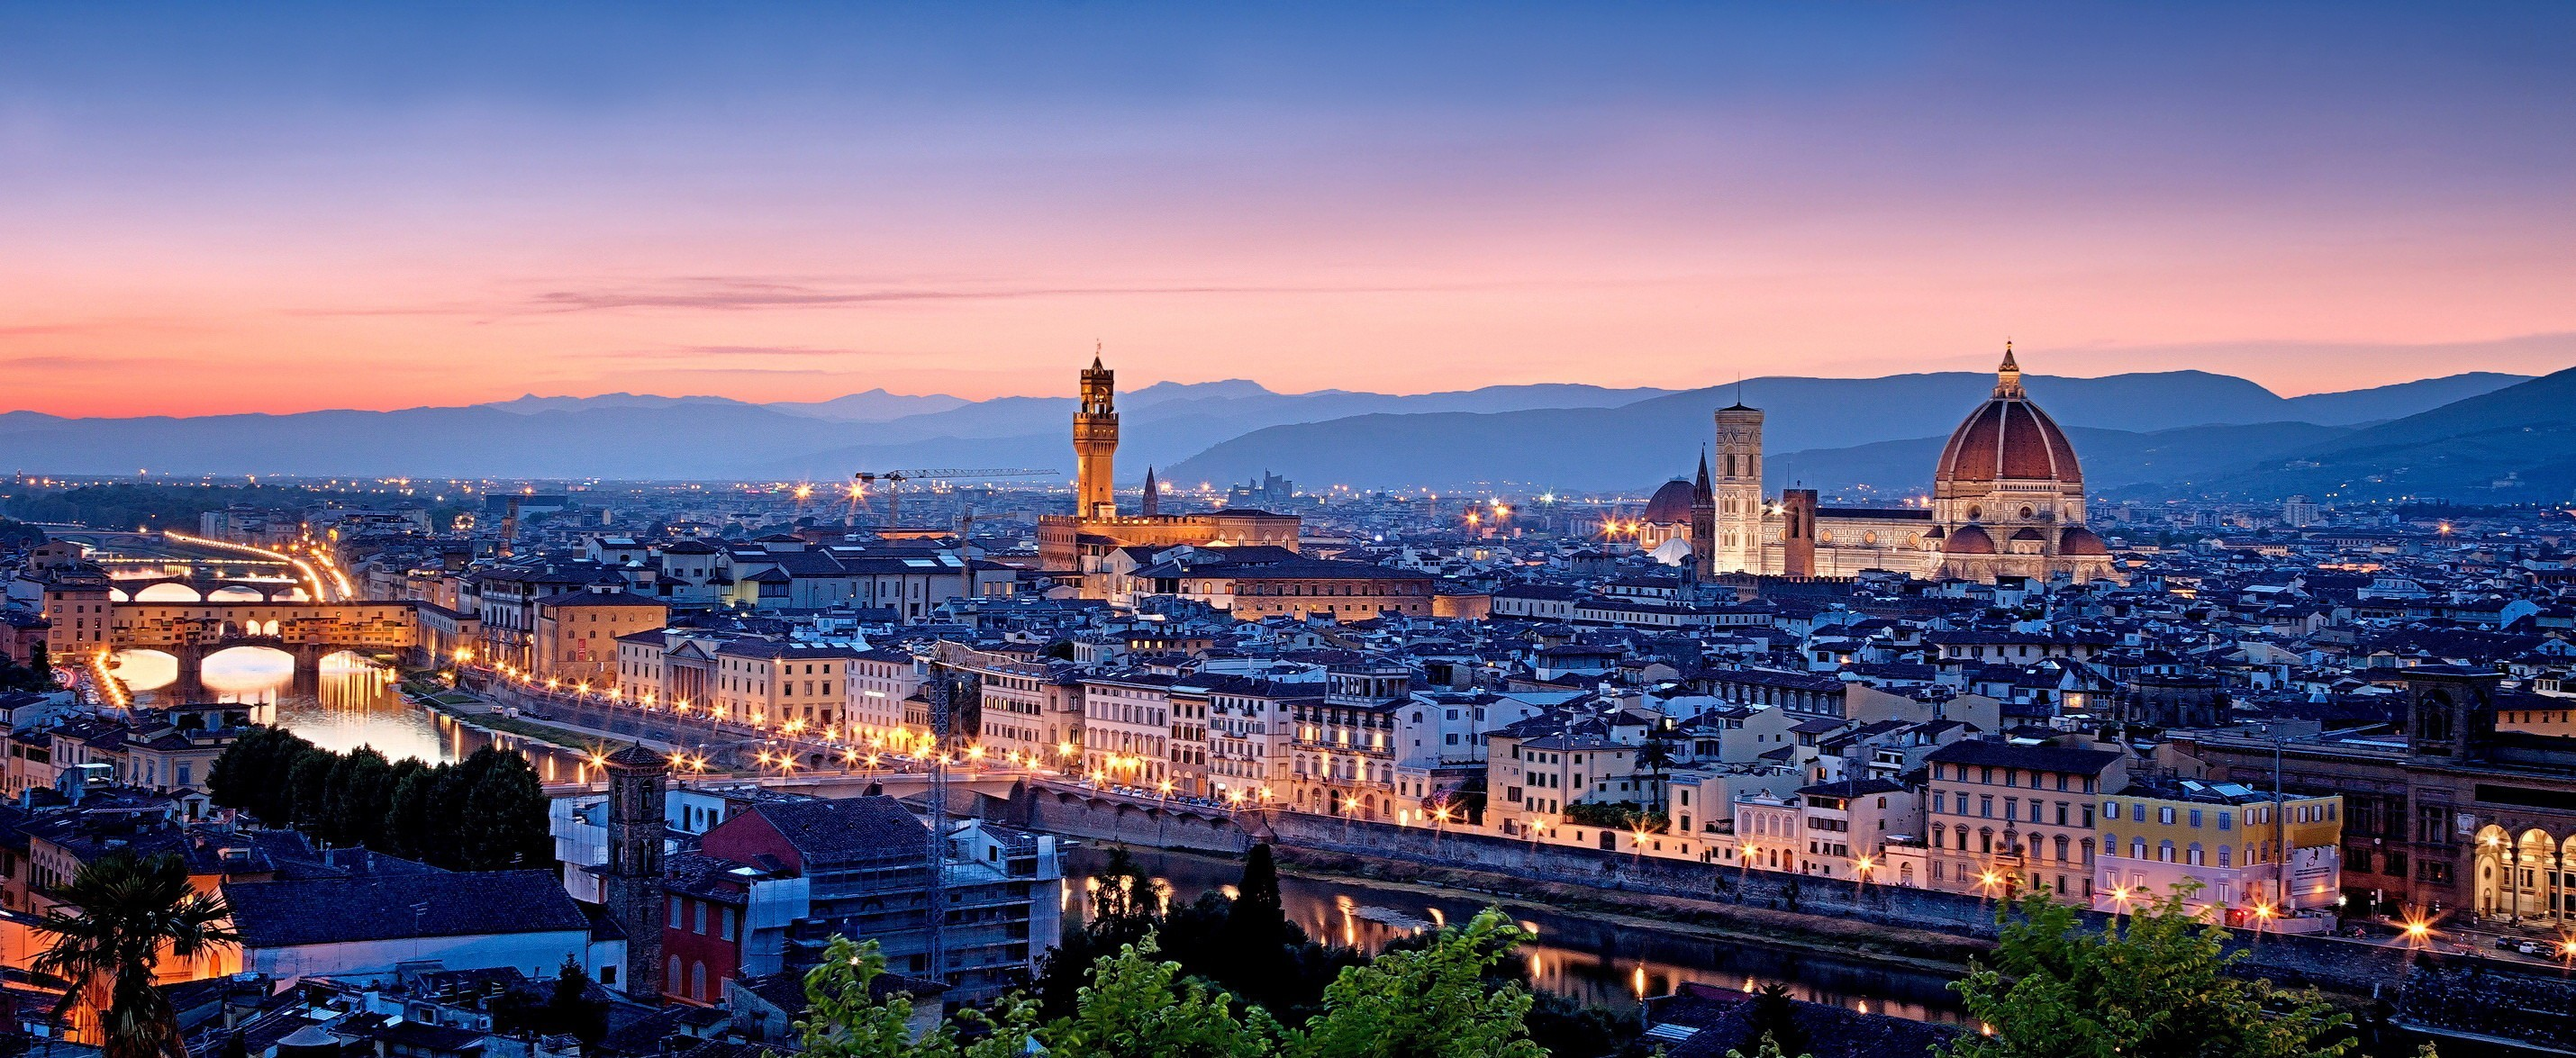 2860x1175 HD Wallpaper | Background Image ID:540256.  Man Made Florence